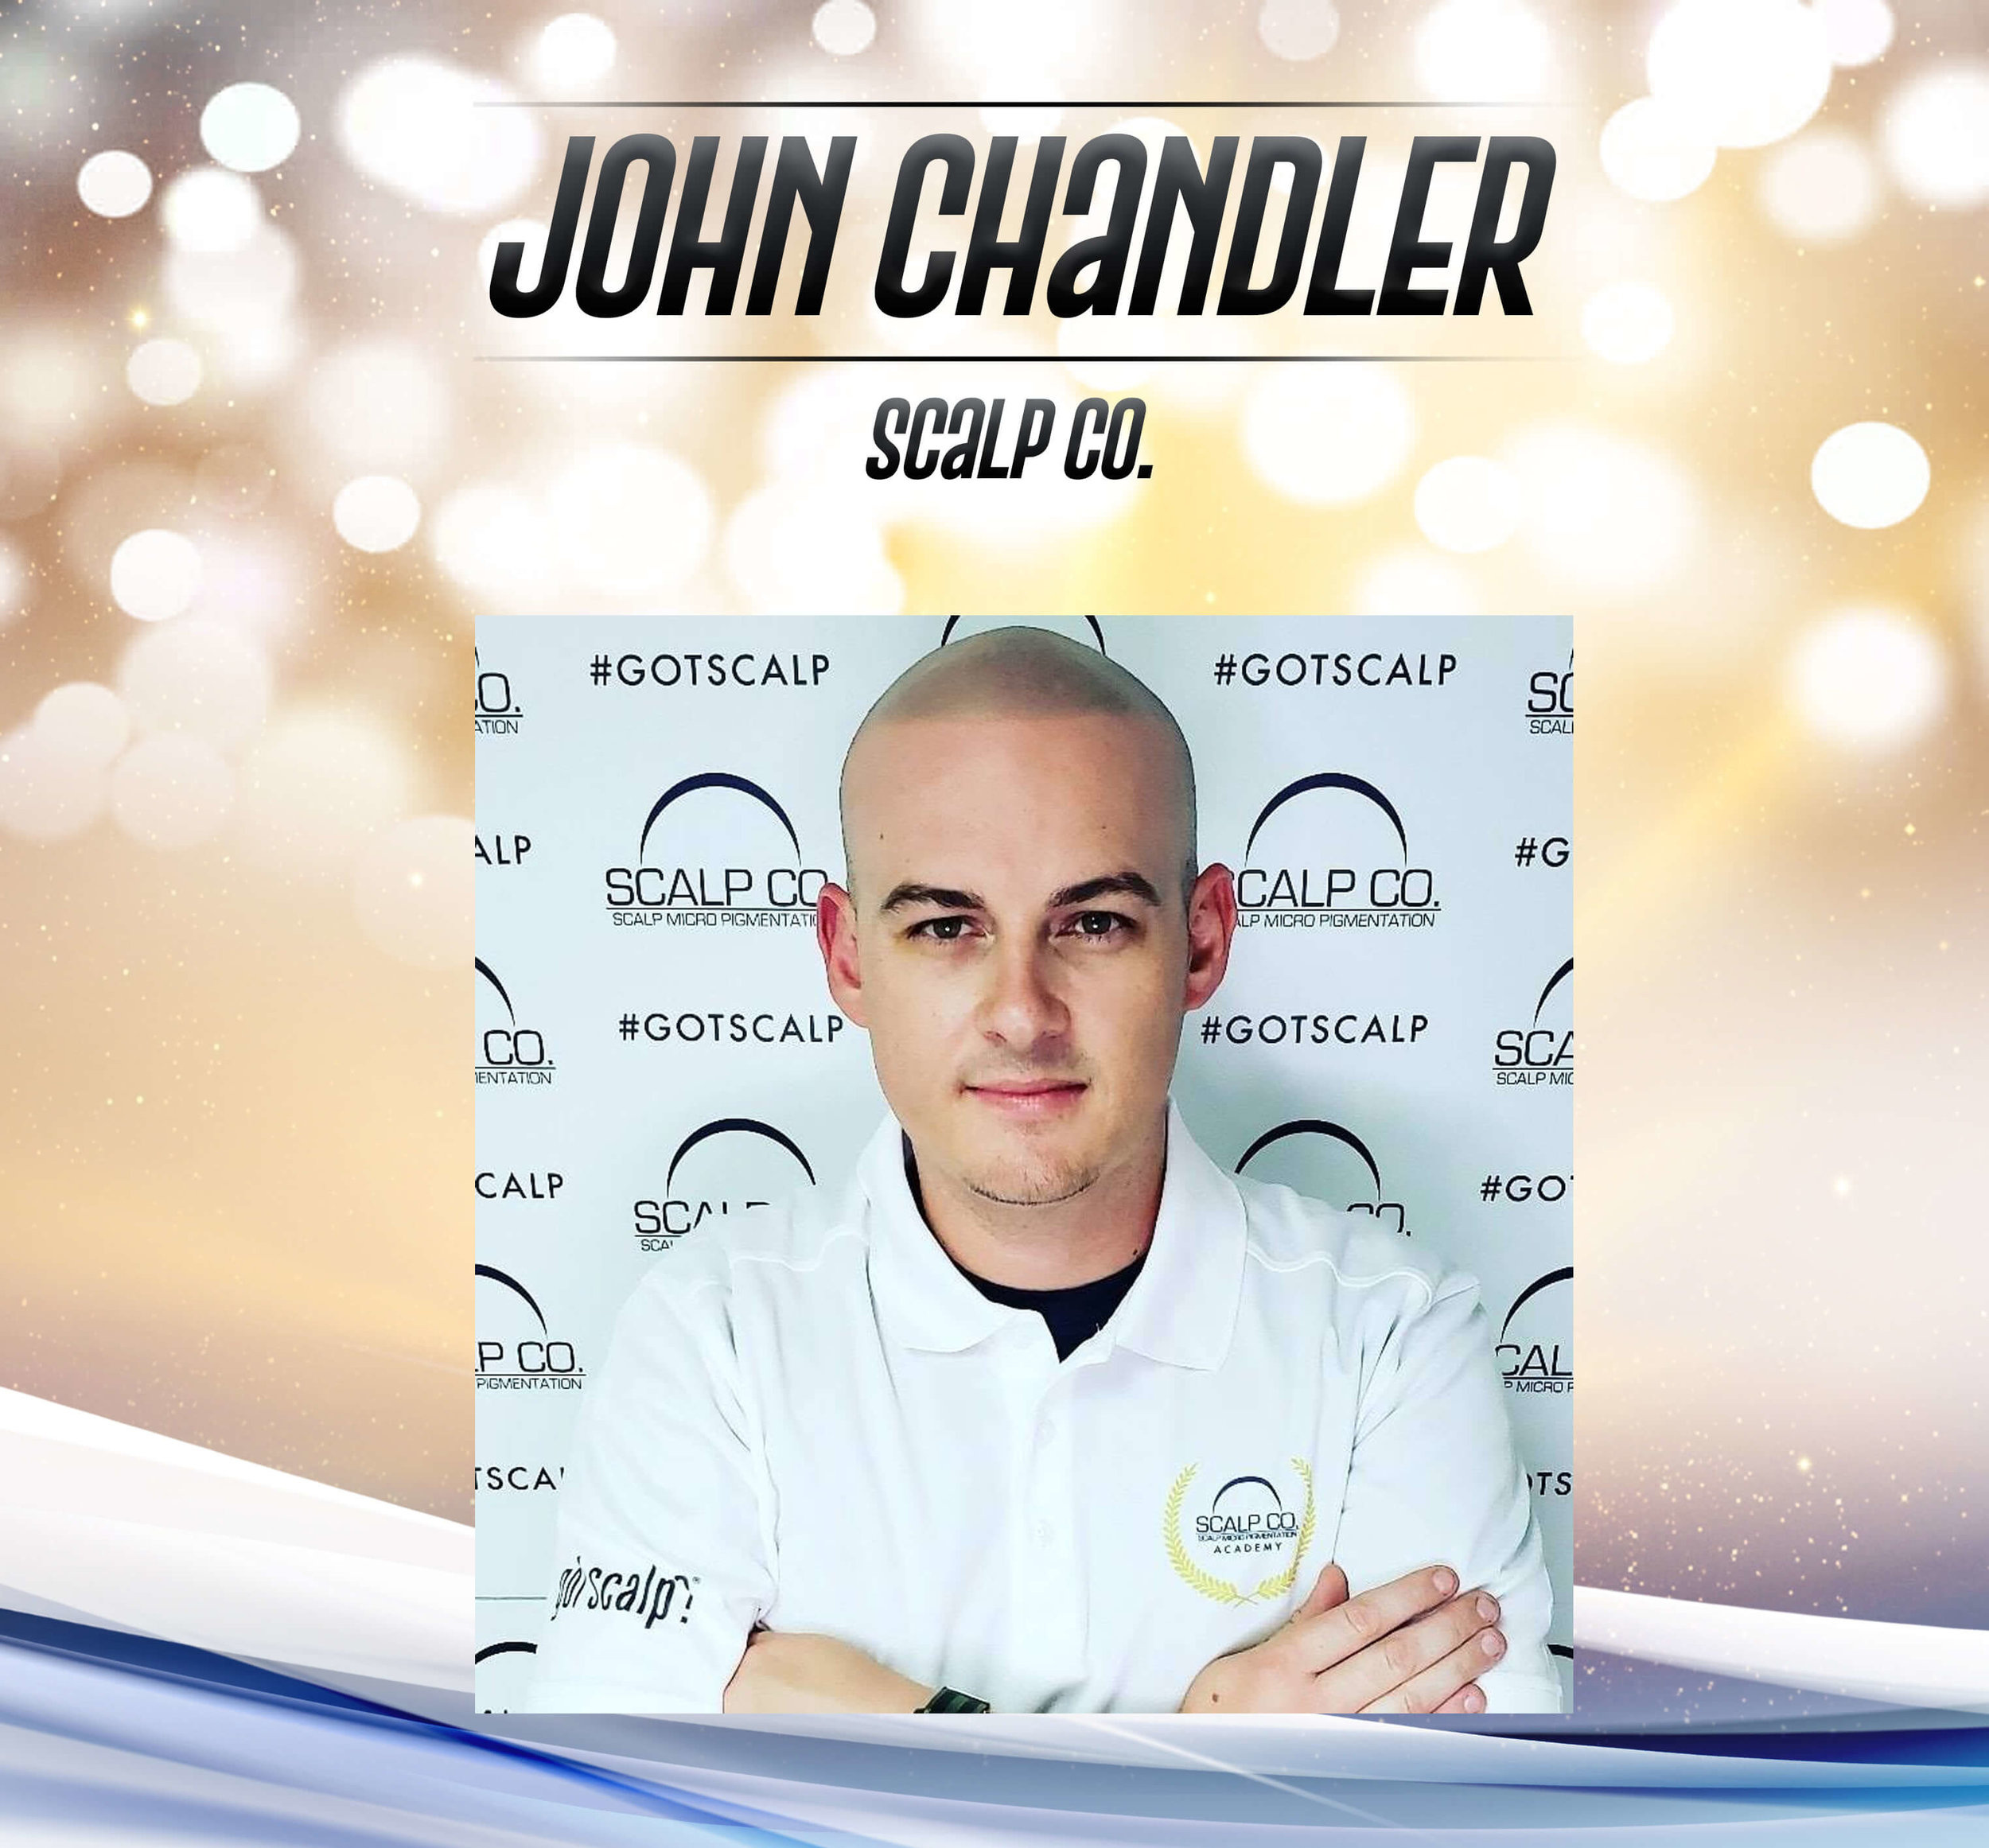 John Chandler - John offers the one on one full service doing hair fillers for women, treating male pattern baldness, and is regarded as the best in the industry in hair transplant scar camouflaging treatments. John's attention to detail and obsessive passion for his craft makes him a standout among the many providers of Scalp Micropigmentation nationwide.John Chandler has performed over 4,500+ individual Scalp Micropigmentation treatments. He is regarded as one of the most skilled SMP artists in the world. John got his start in the industry with the world renowned HIS Hair Clinic. John worked in the Los Angeles clinic for a year before moving onto Clinic Manager for HIS Hair's San Francisco Clinic for four years before opening Scalp Co.